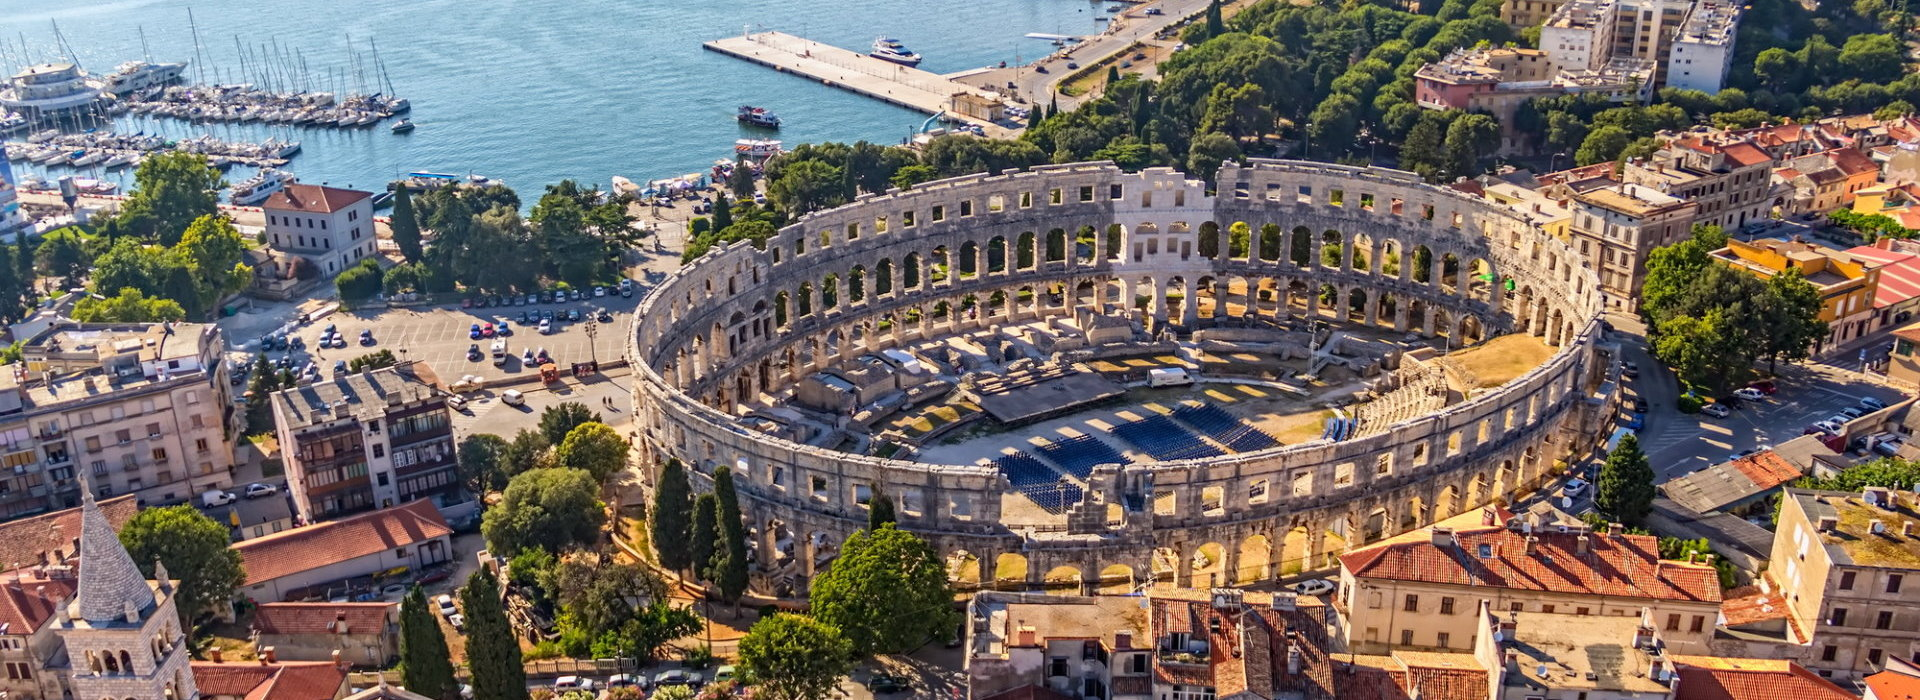 Your holiday dream Pula